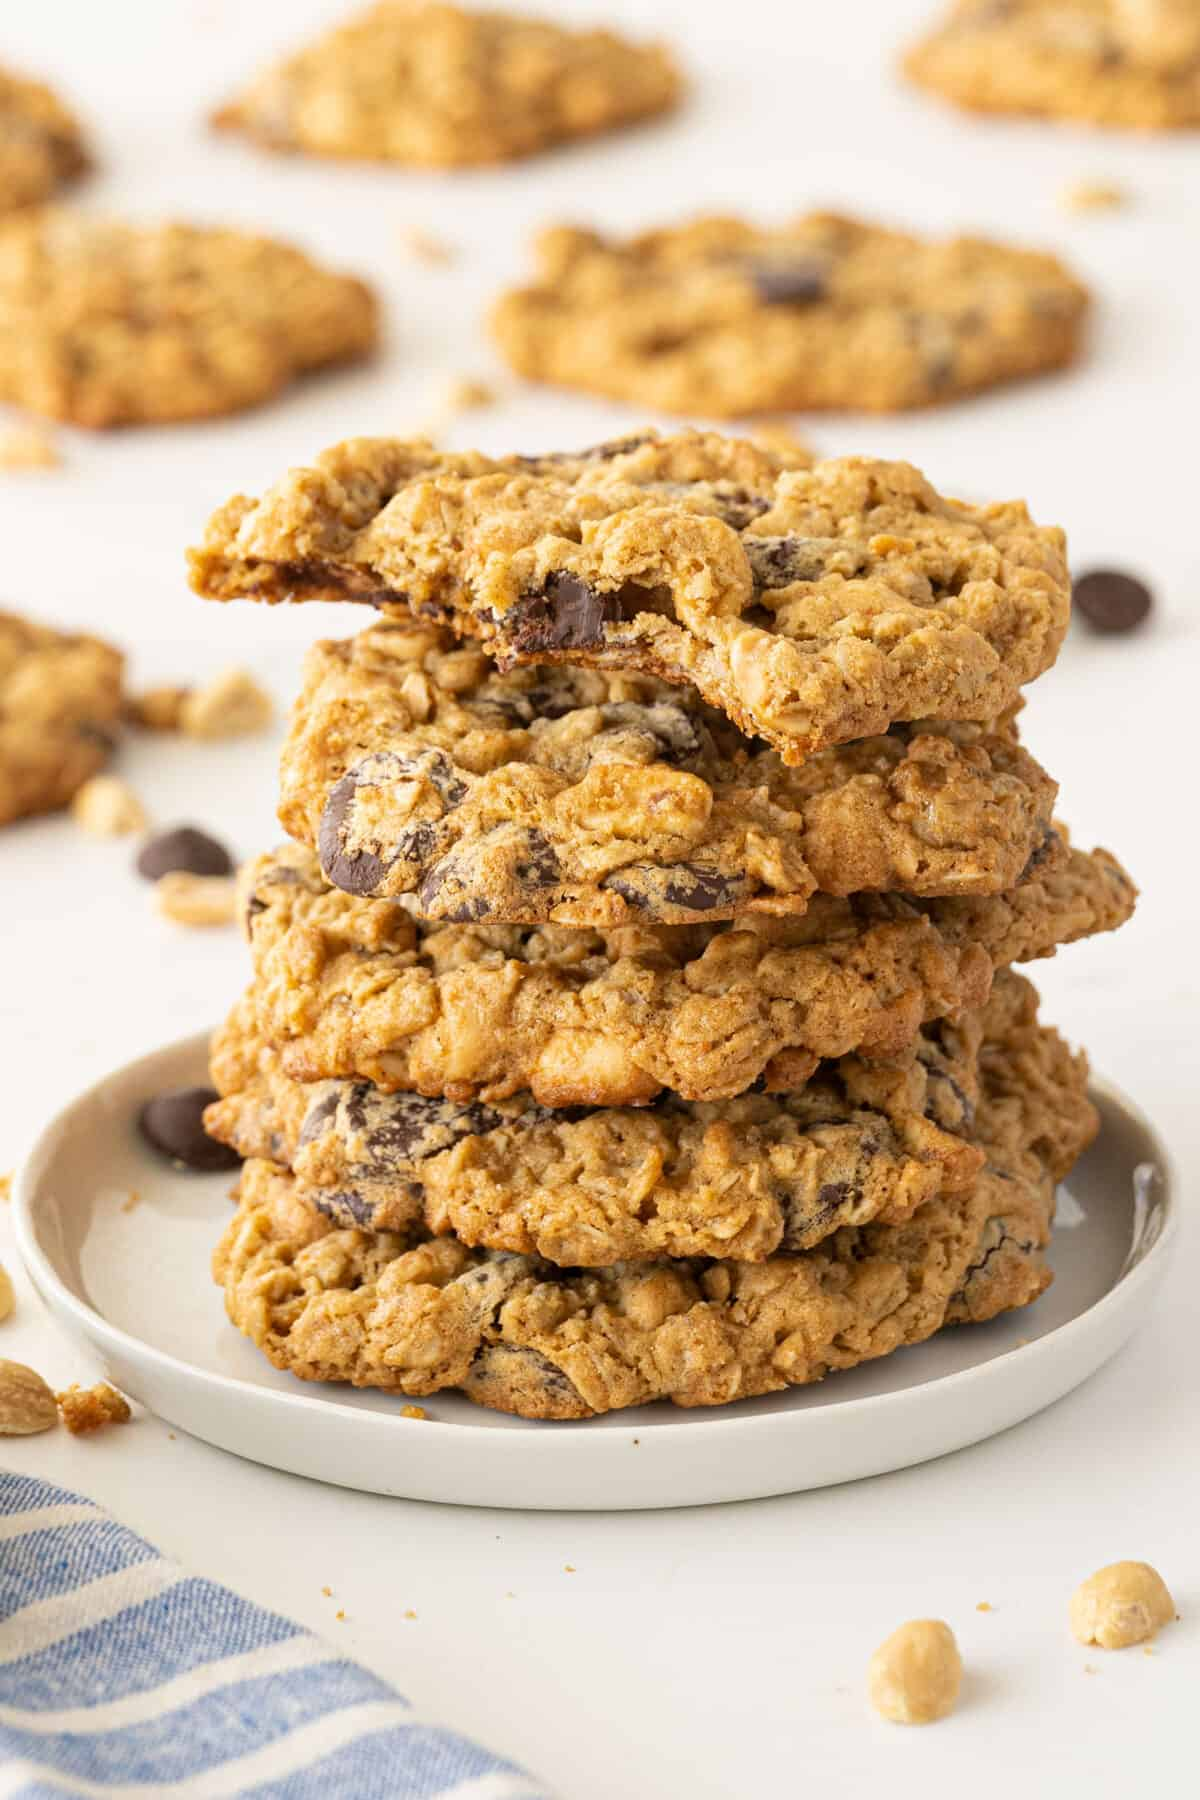 Peanut Butter Oatmeal Cookies on a white plate with a bite out of one cookie